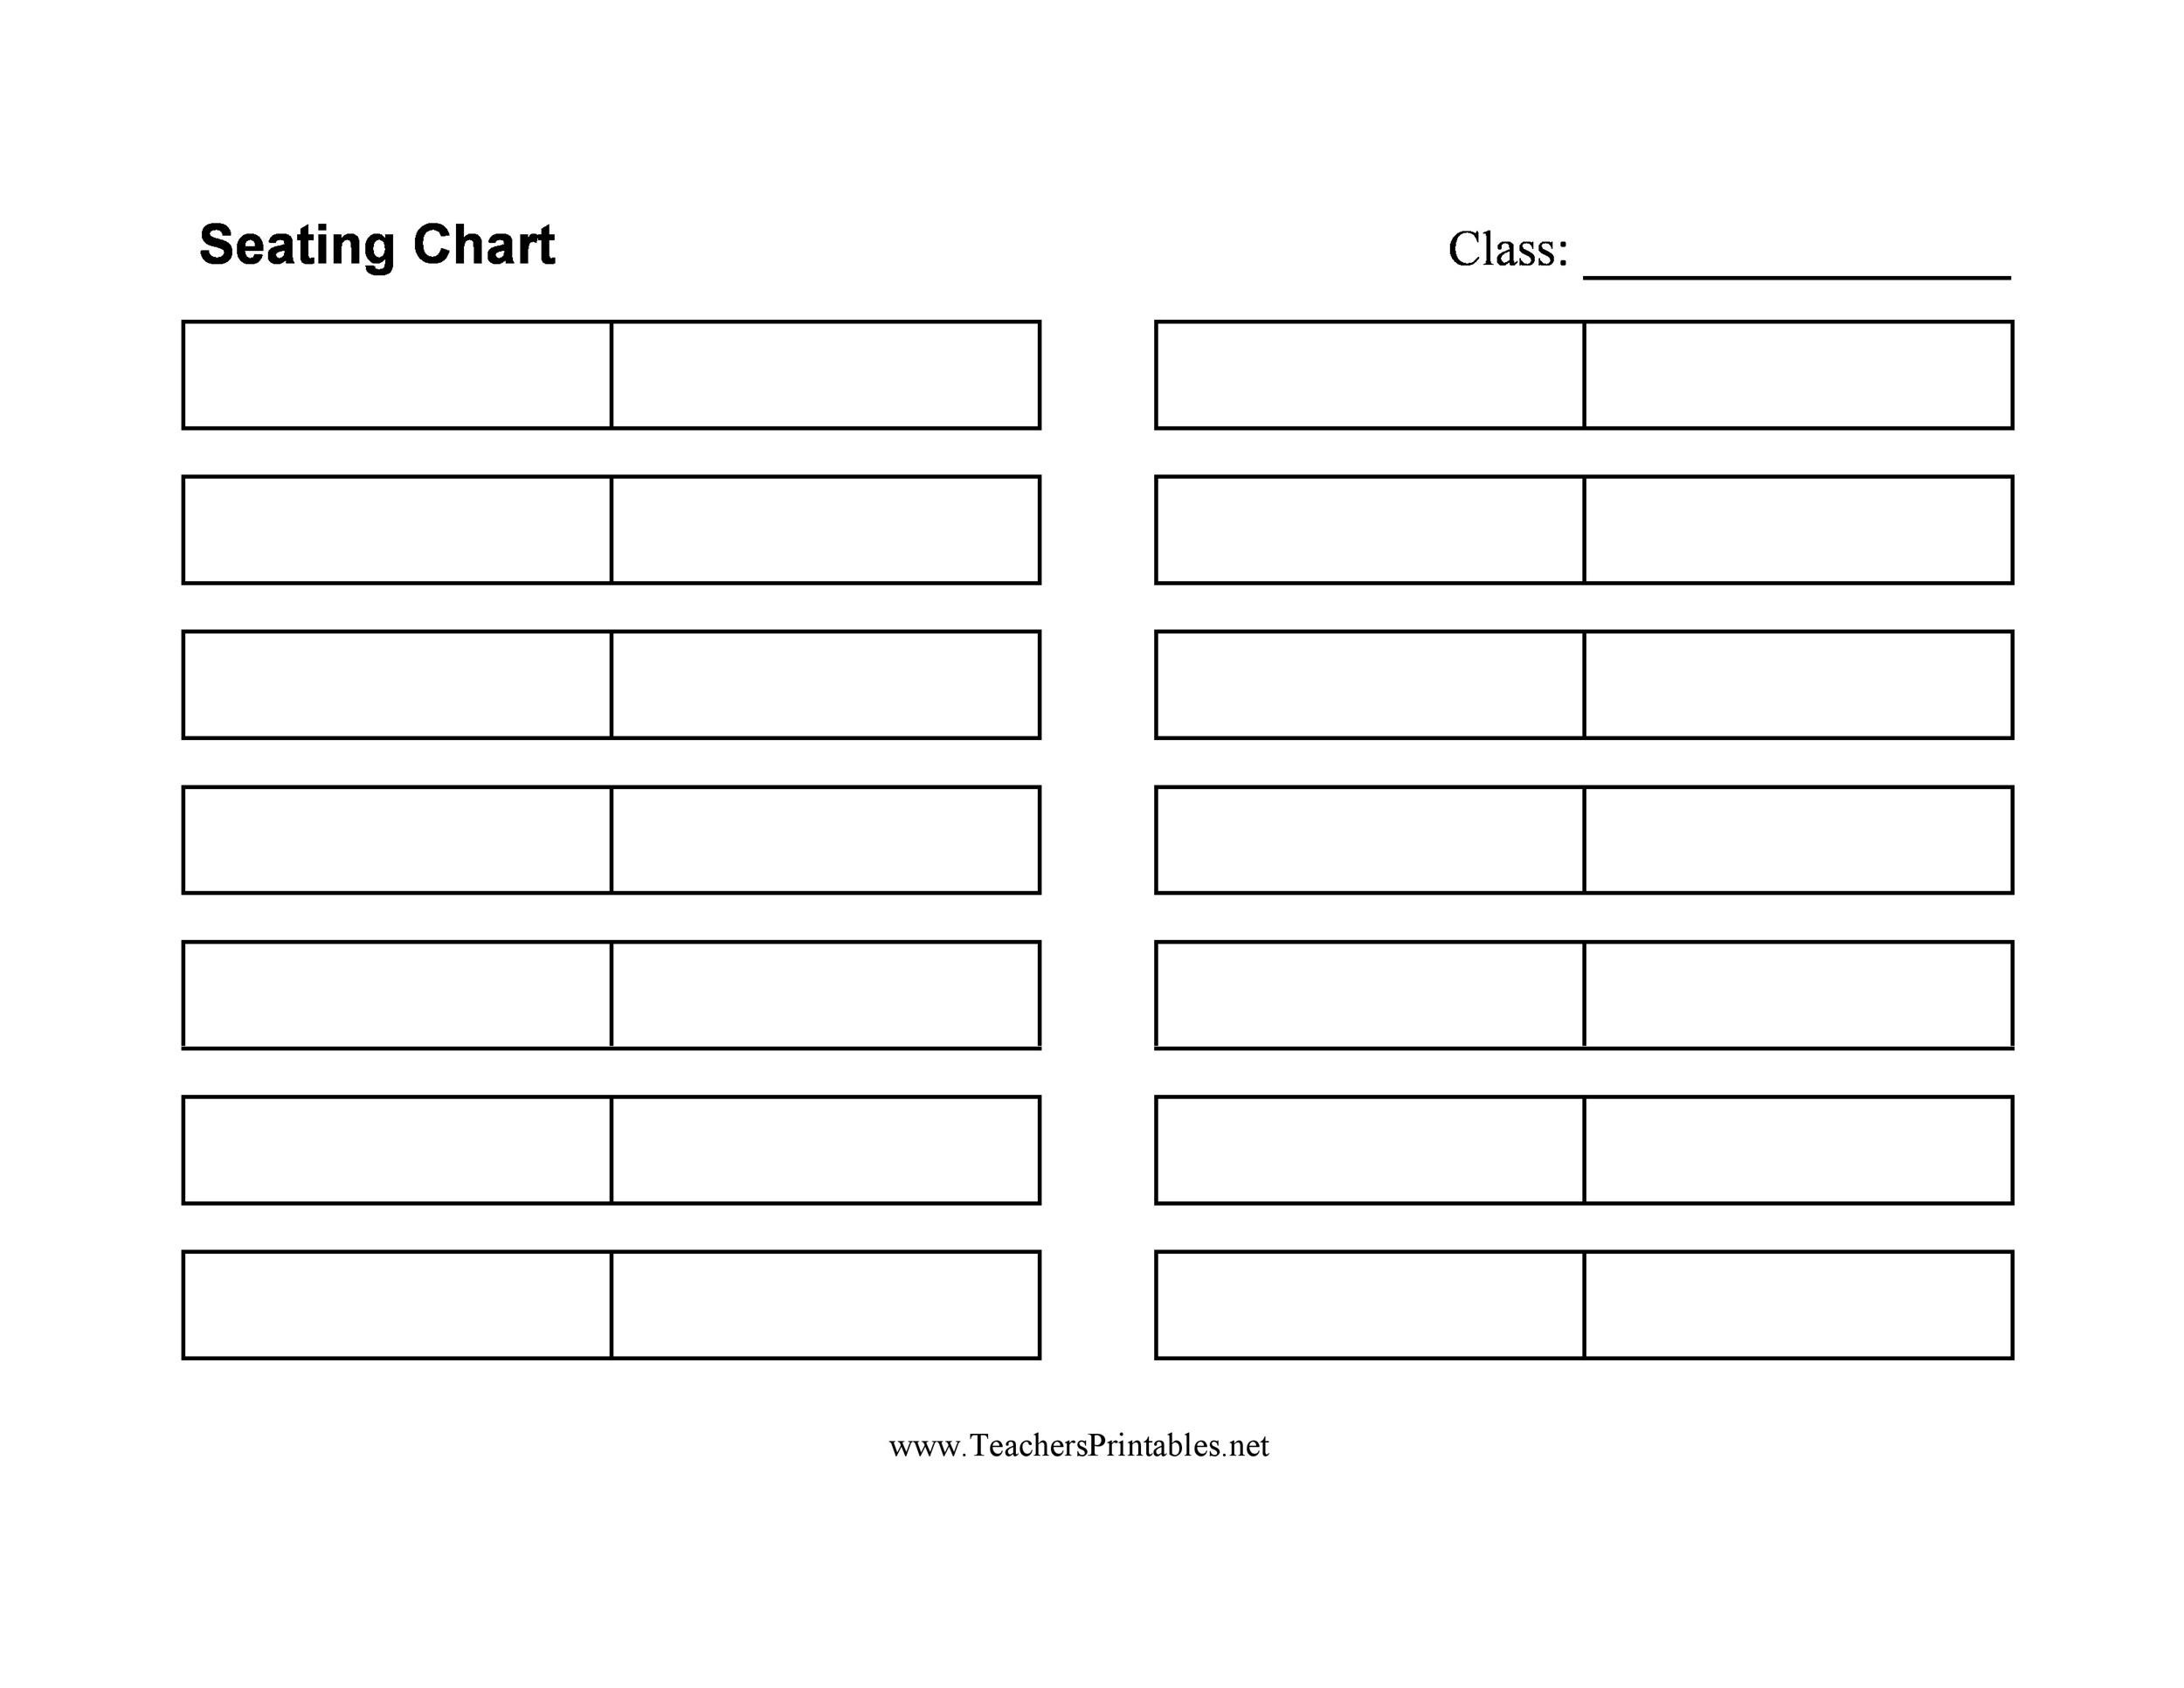 40+ Great Seating Chart Templates (wedding, Classroom + More. Microsoft Office Certificate Template Photo. Professional Resume Templates Download. Template For Formal Letter. Microsoft Word Page Borders Download Free Template. Personal Statement Computer Science Template. Printable Business Card Template. Place Cards Template For Word Template. Resignation Letter Template Pdf